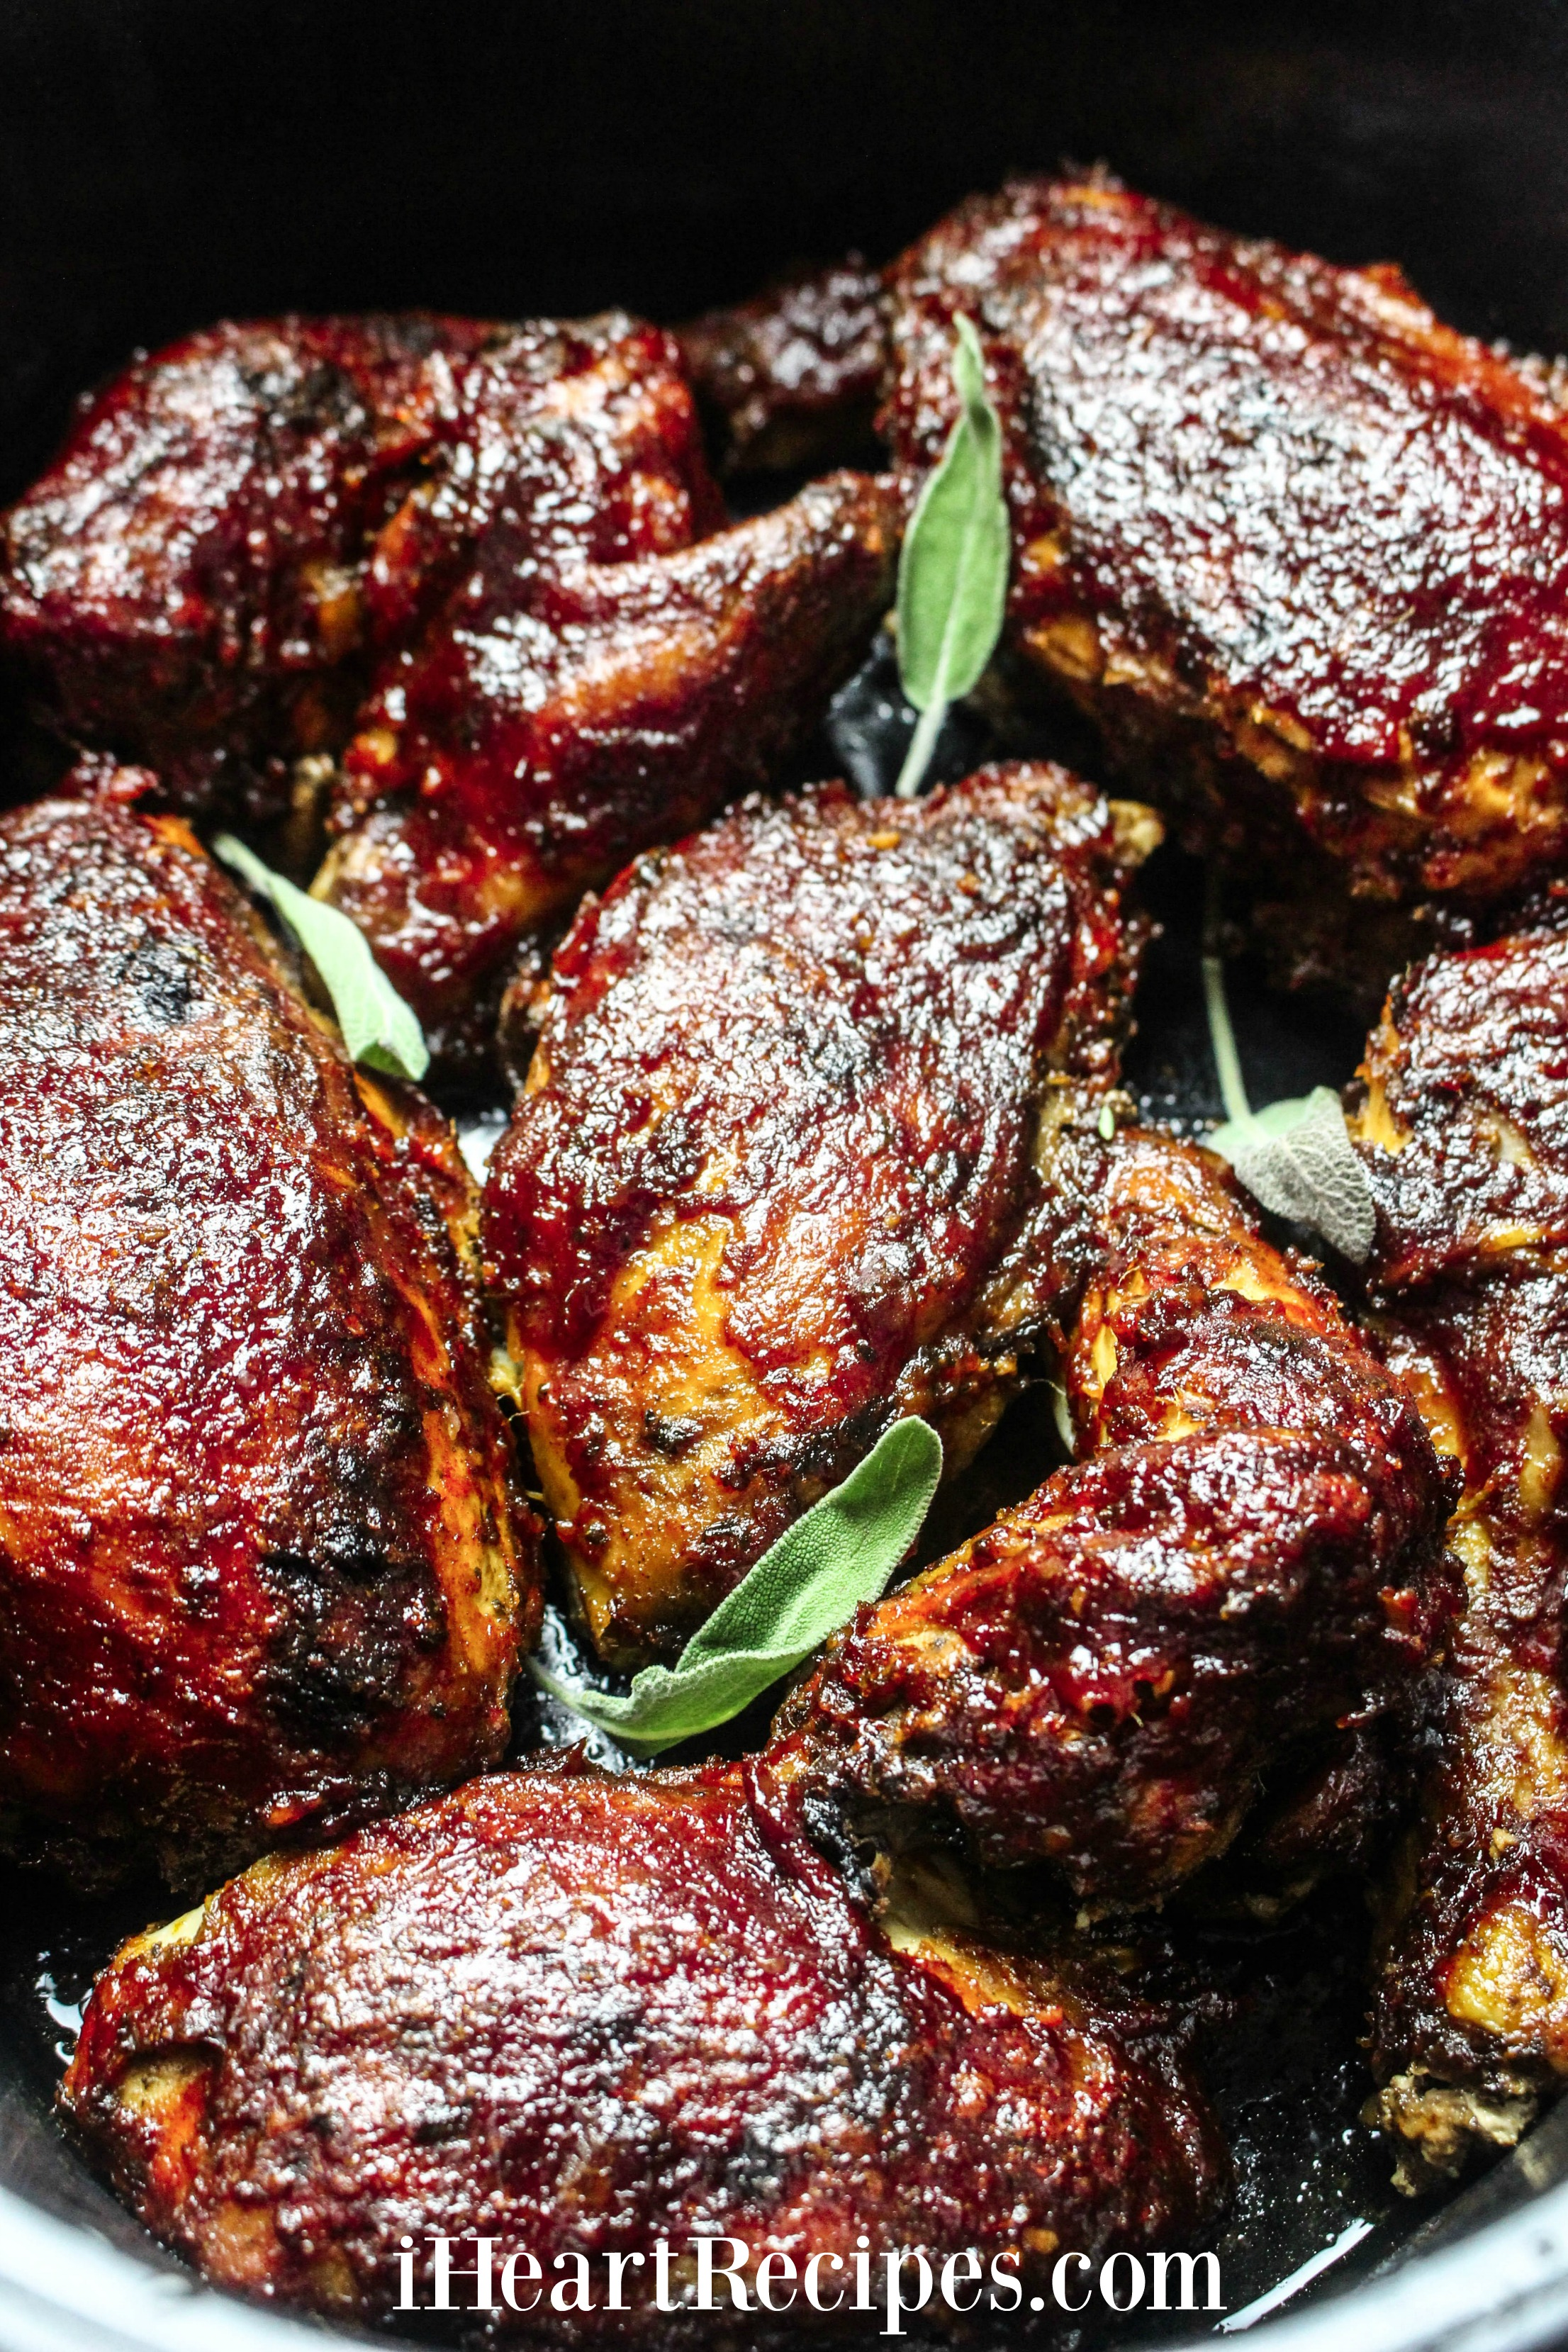 The tangy BBQ sauce is slow cooked and perfectly caramelized to give this tender chicken extra flavor